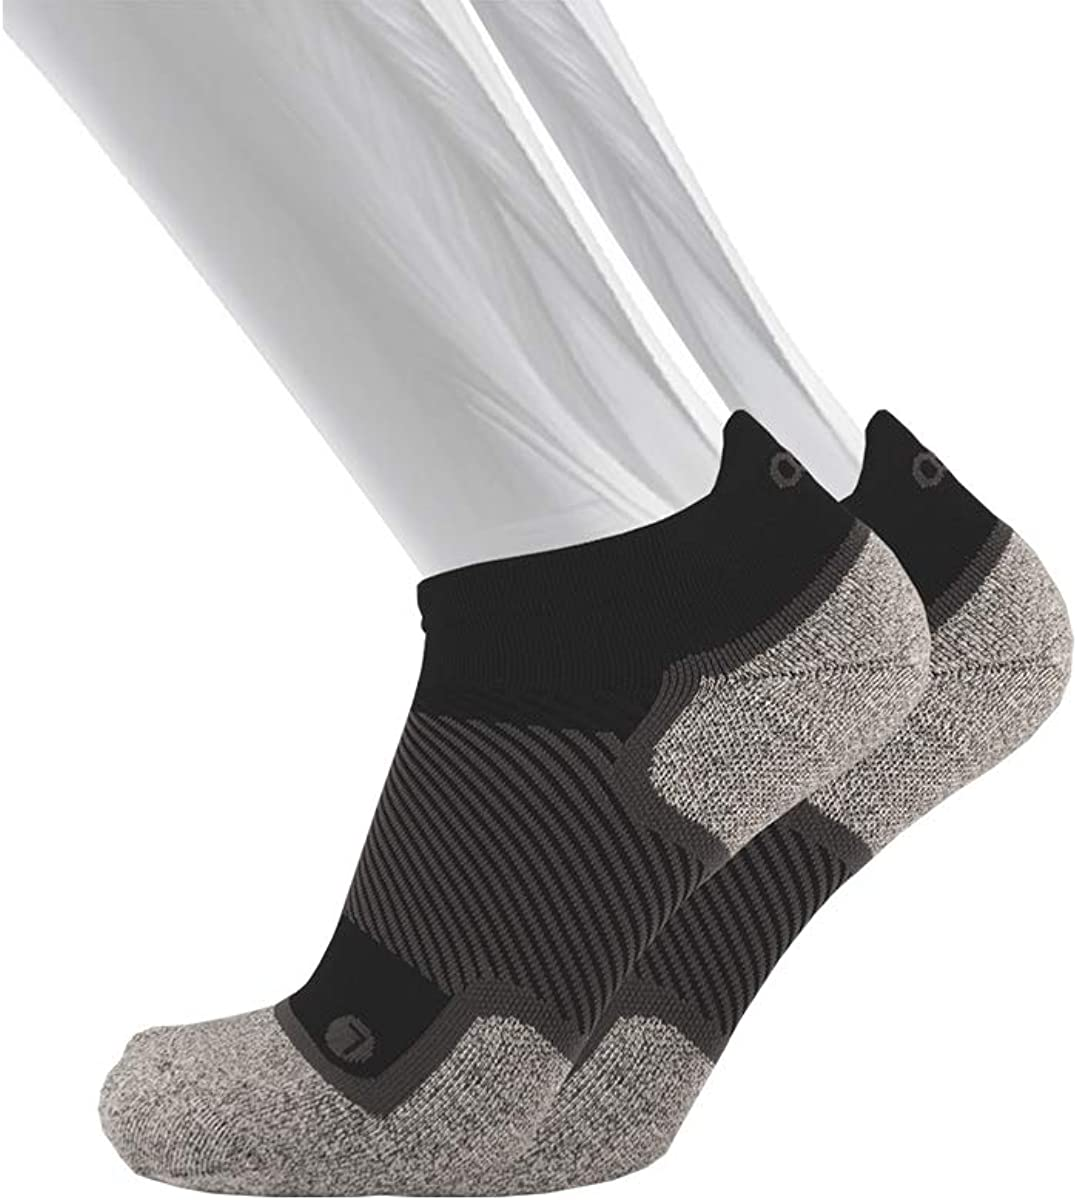 OS1st WP4 Wellness Performance Socks ideal for diabetics, sensitive feet and circulation support: Clothing